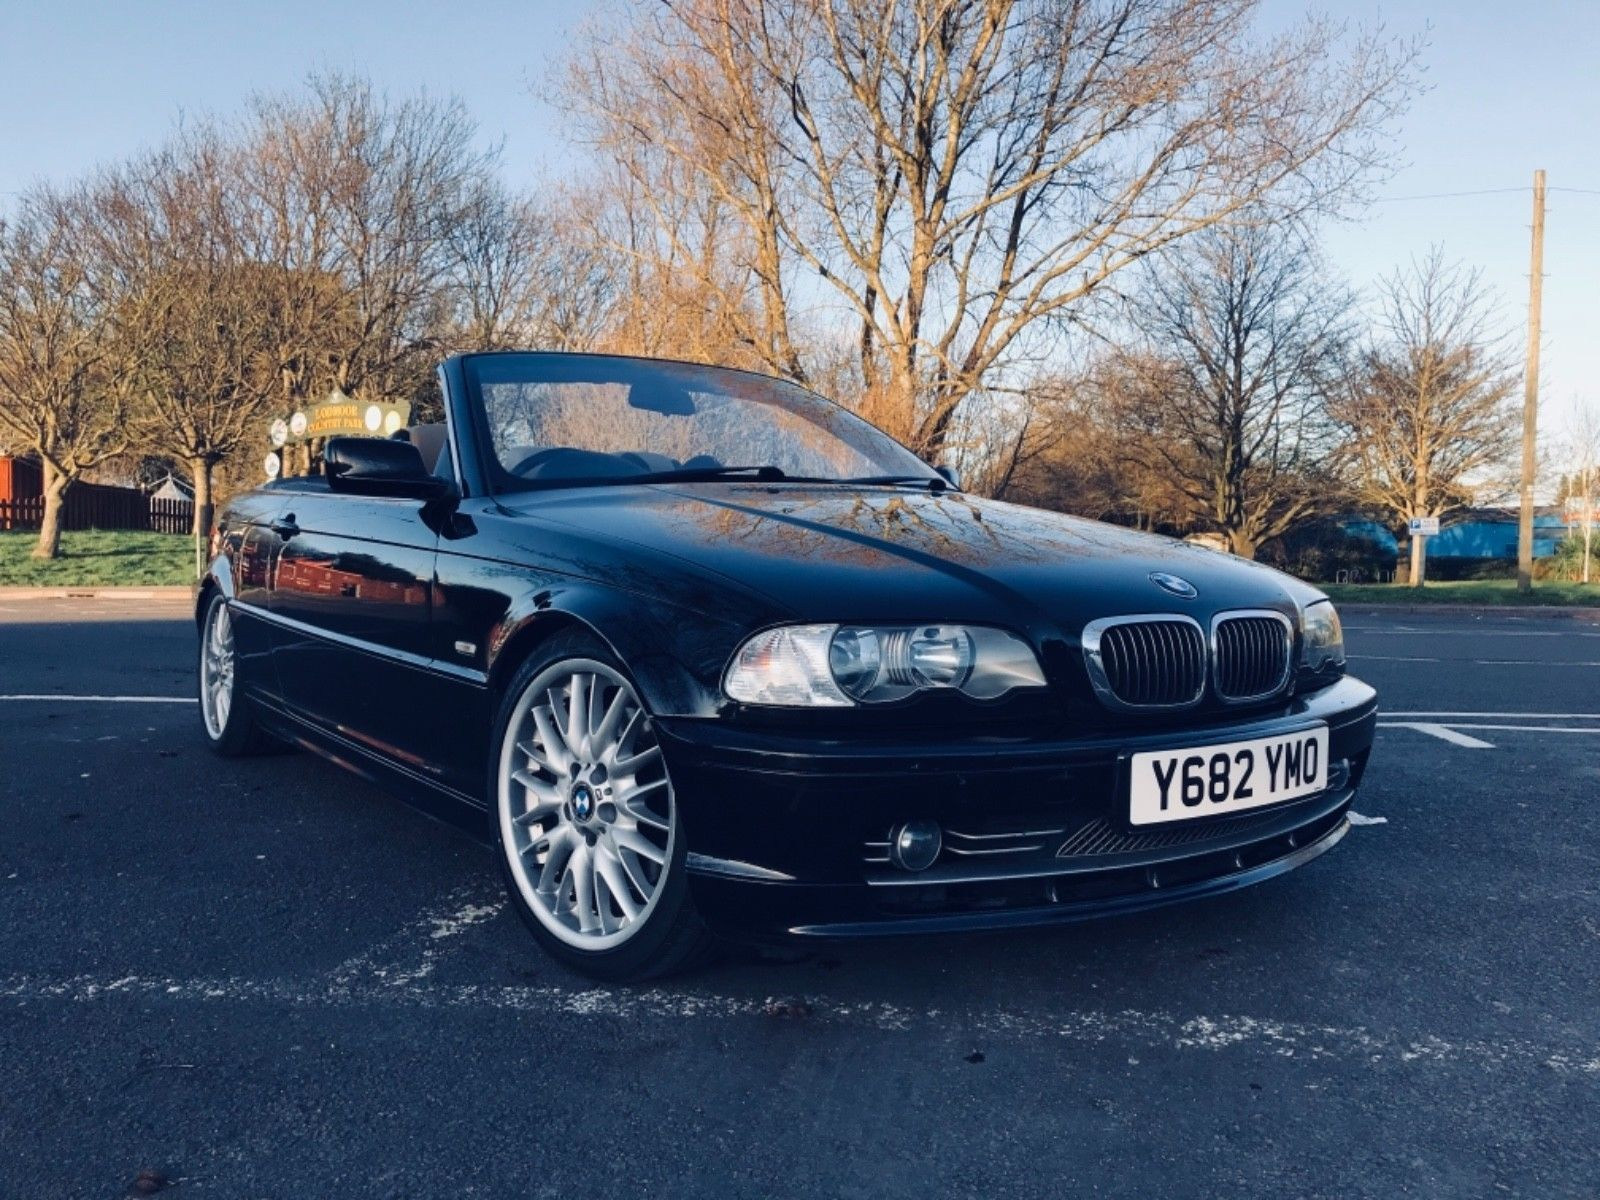 2001 Bmw 330ci Convertible Lowered Harmon Kardon E46 2 450 00 End Date Tuesday Mar 20 2018 18 34 35 Gmt Add To Watch List